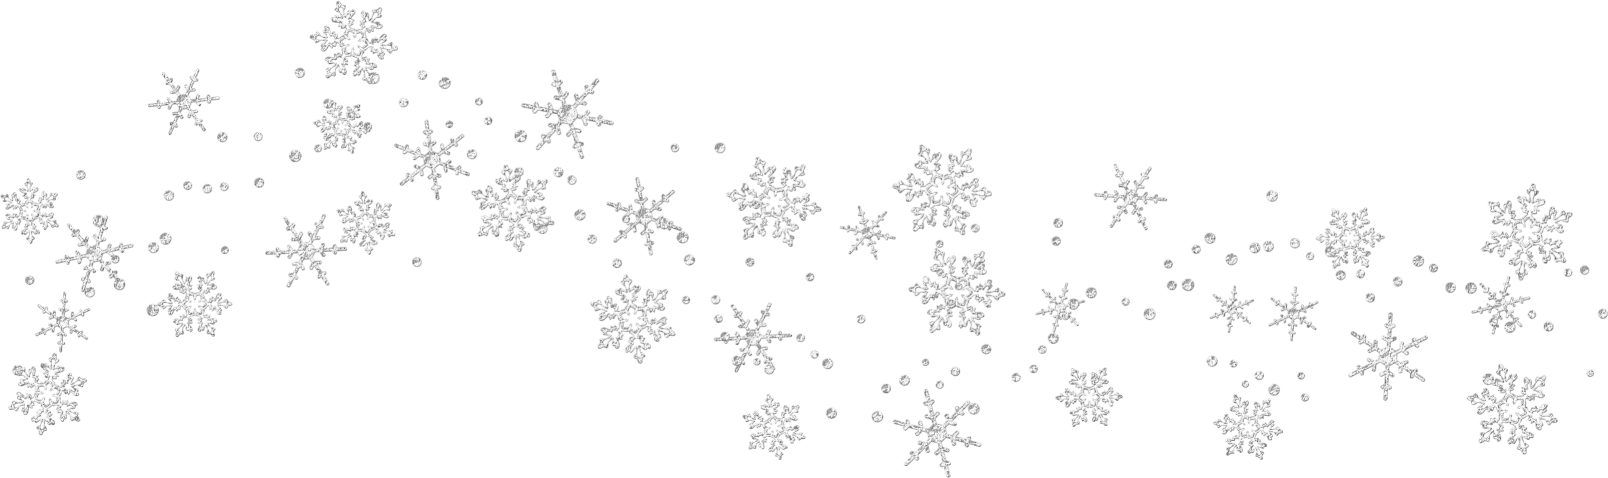 Snow Falling Clipart Black And White Snowflakes fal